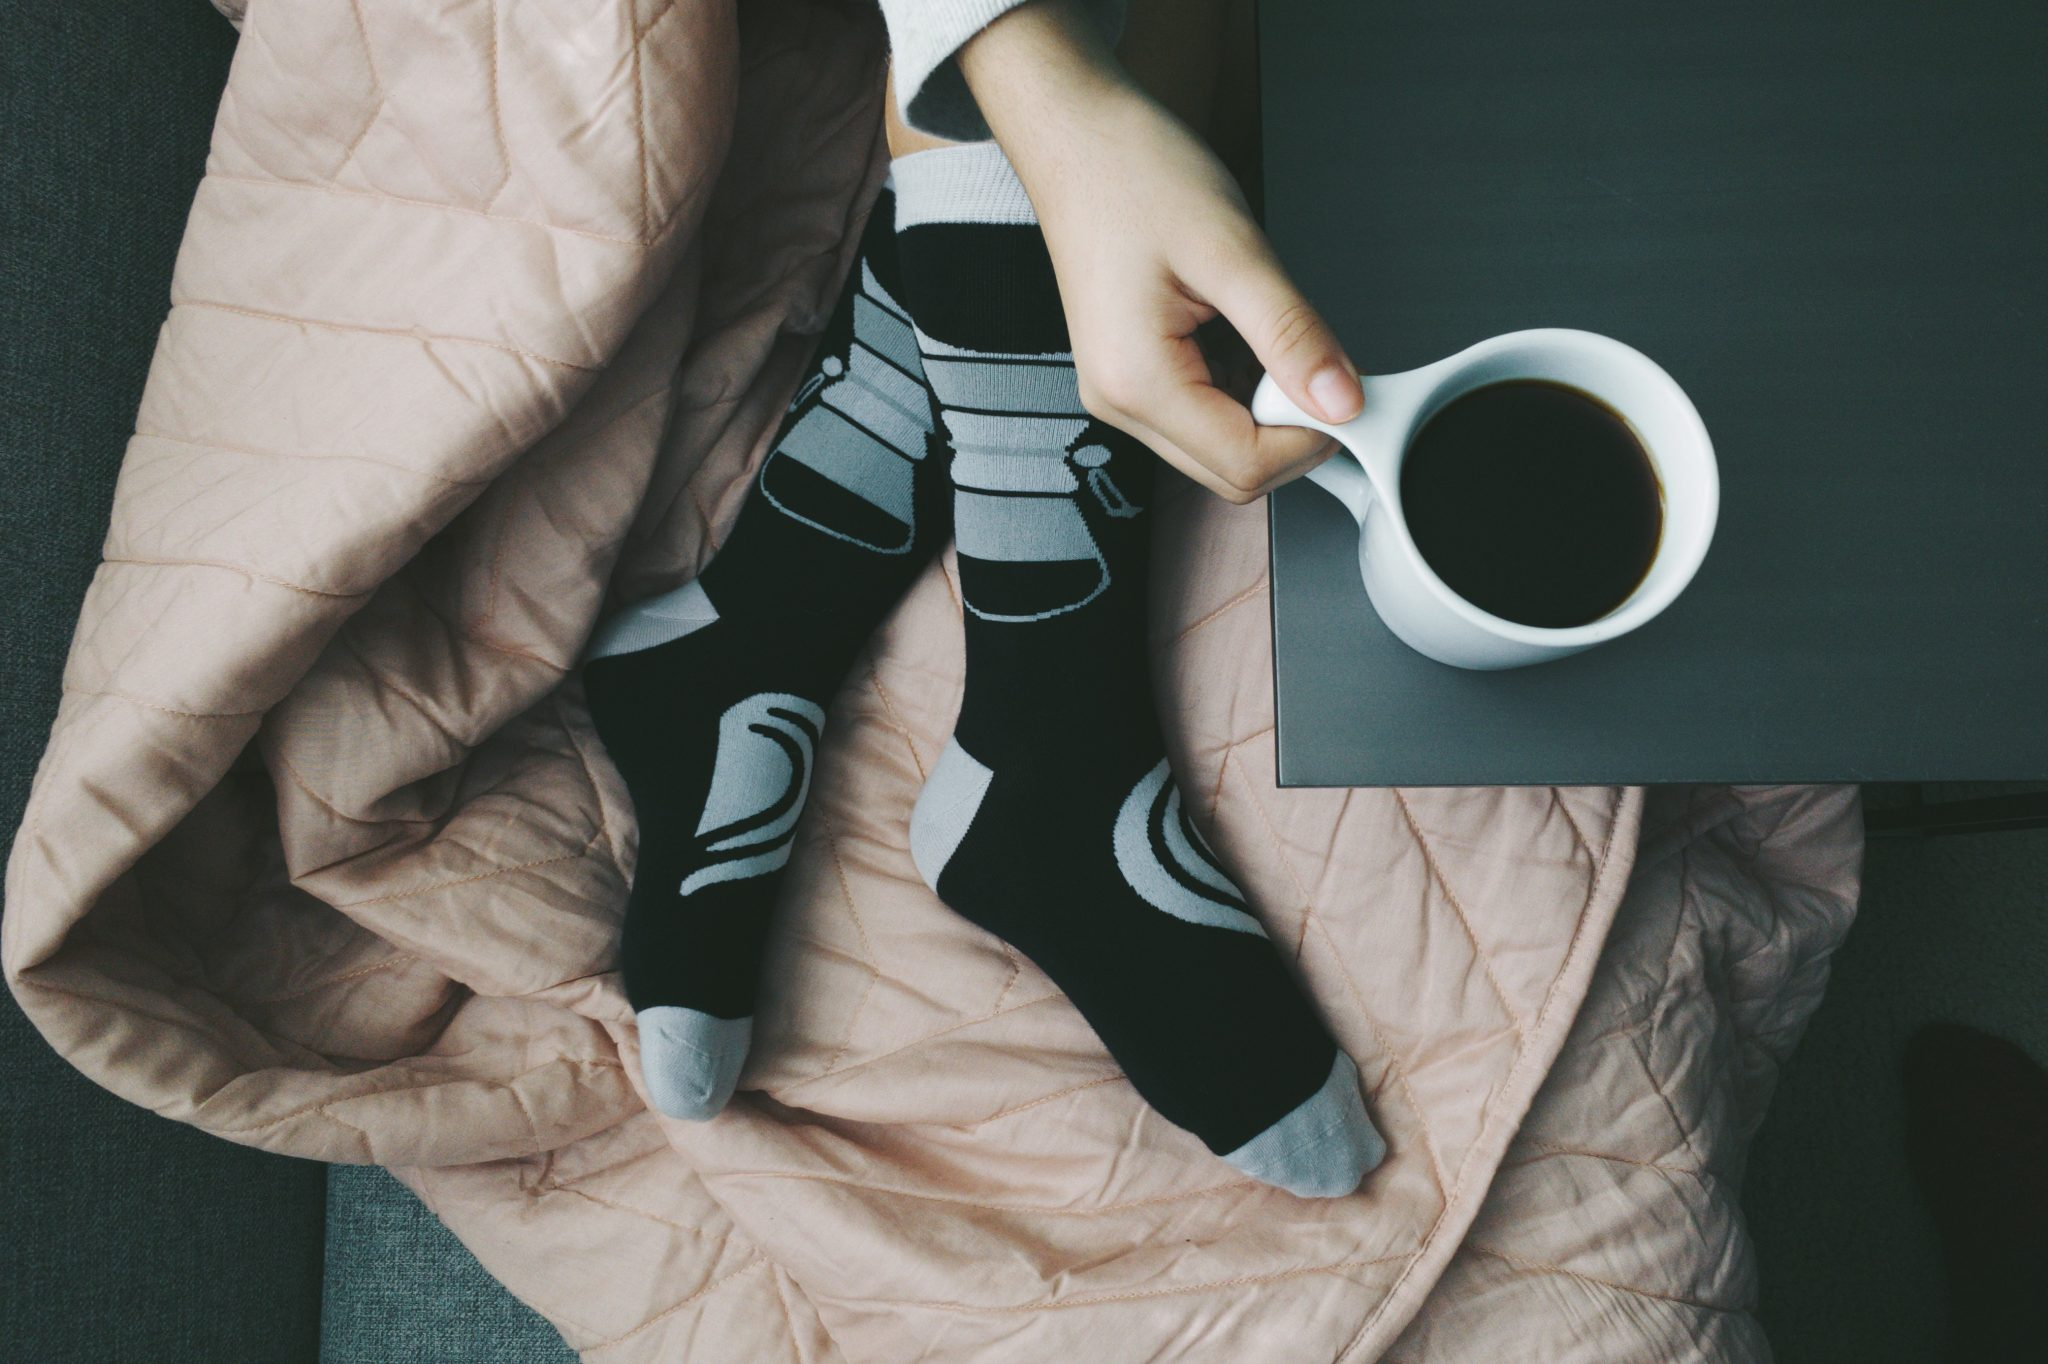 Coffee-themed socks and hand holding a cup of coffee.